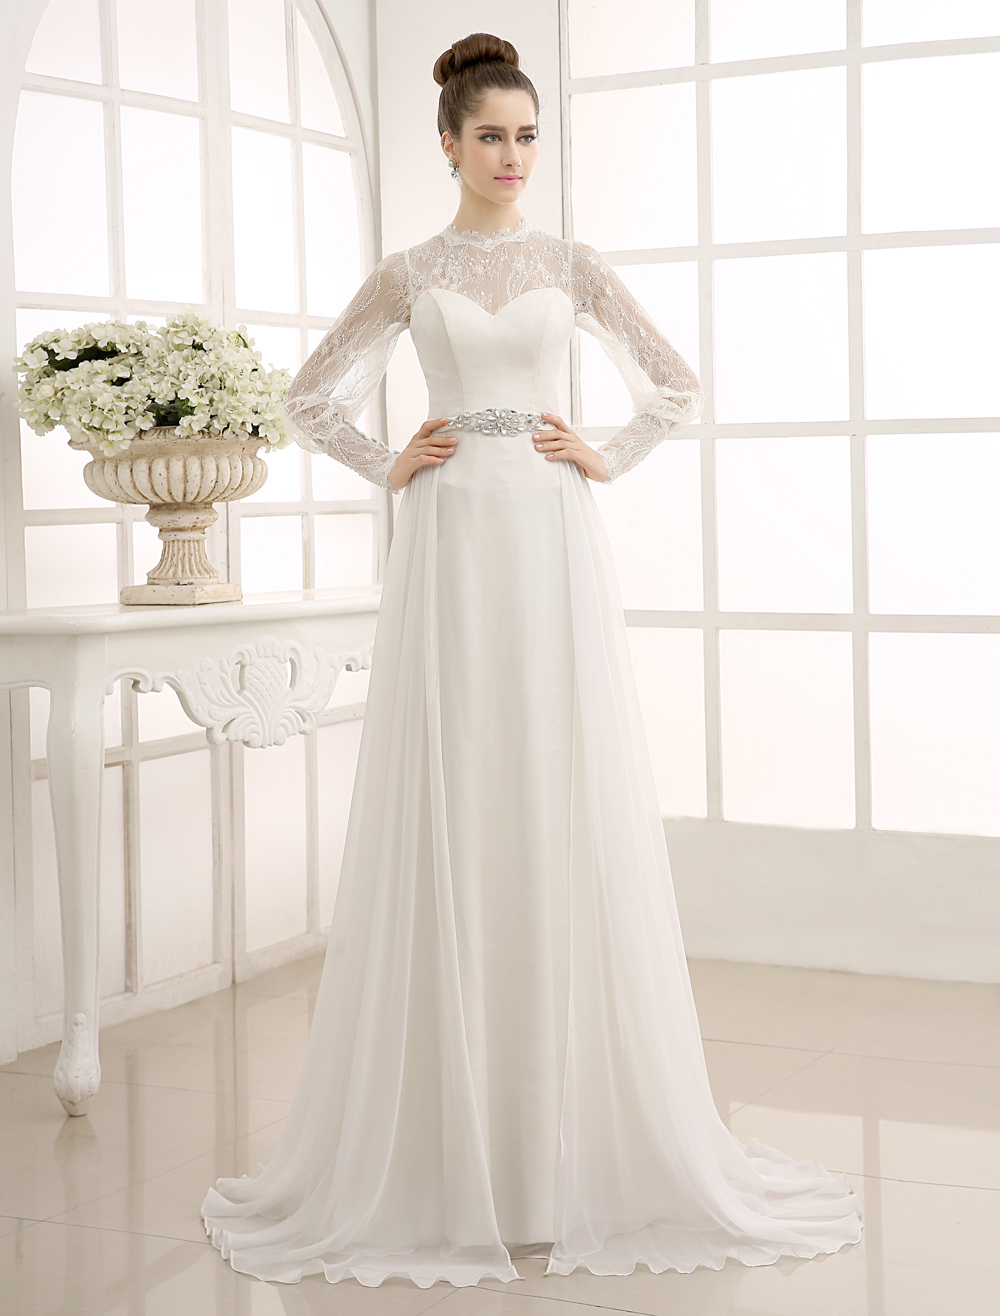 Ivory Sweep Chiffon Wedding Dress with Beaded Lace Milanoo